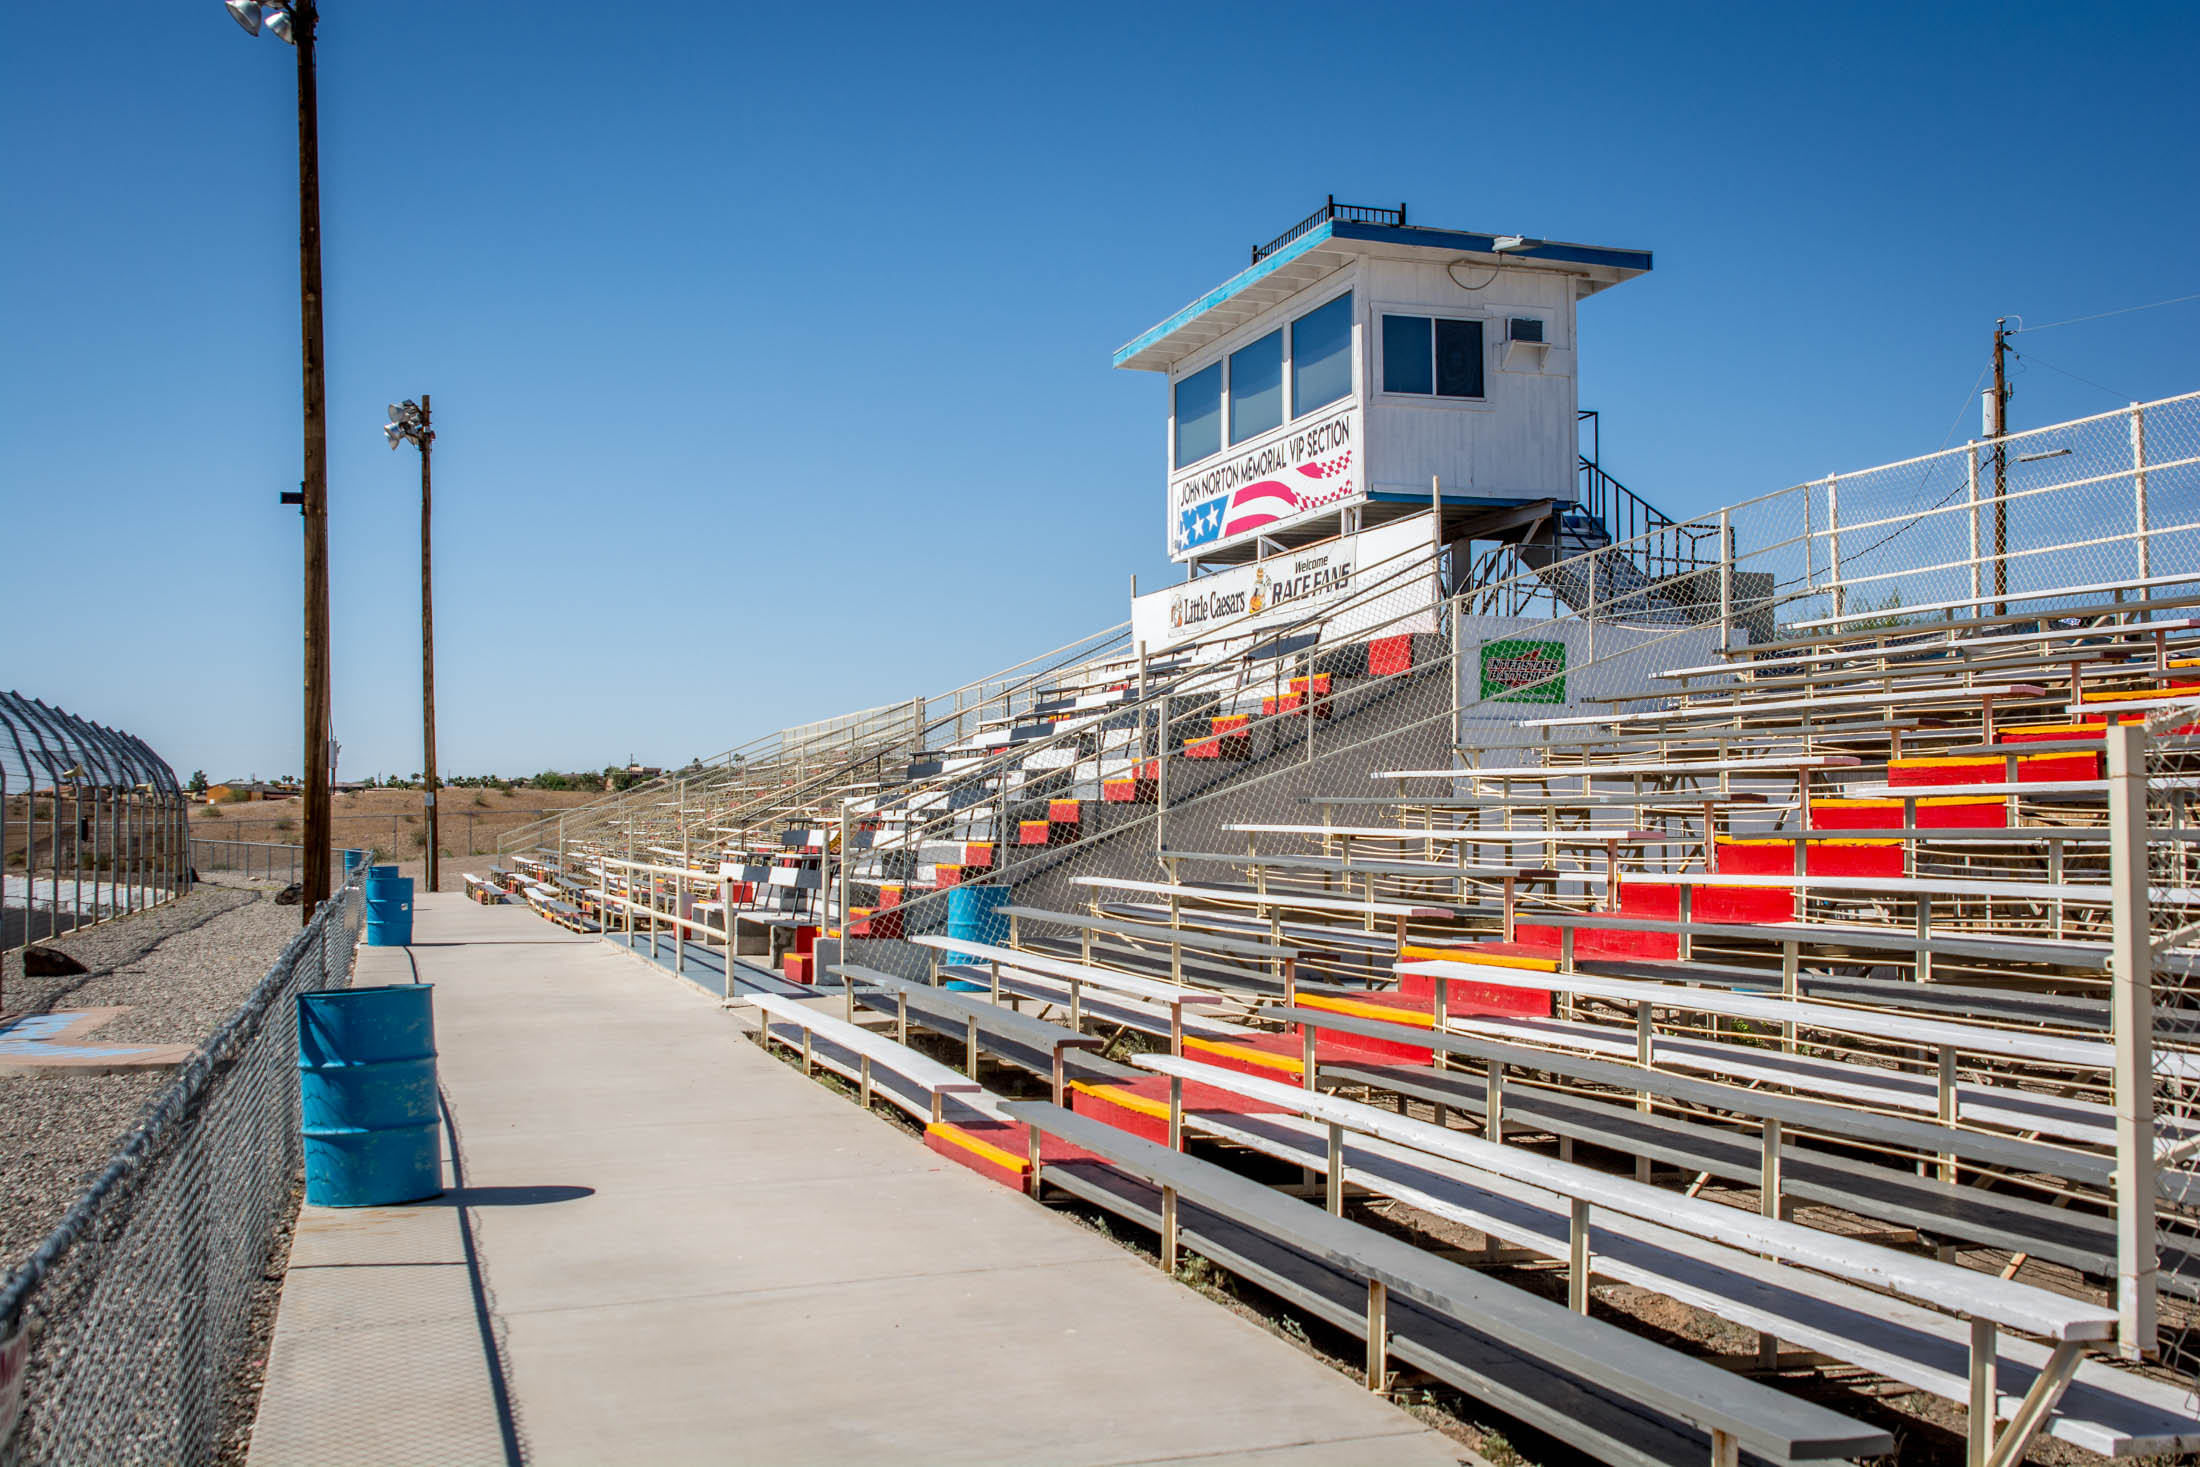 If grandstands aren't your thing, we have a section dedicated to lawn chairs located in Turn One. It's BYOC - Bring your own chair.